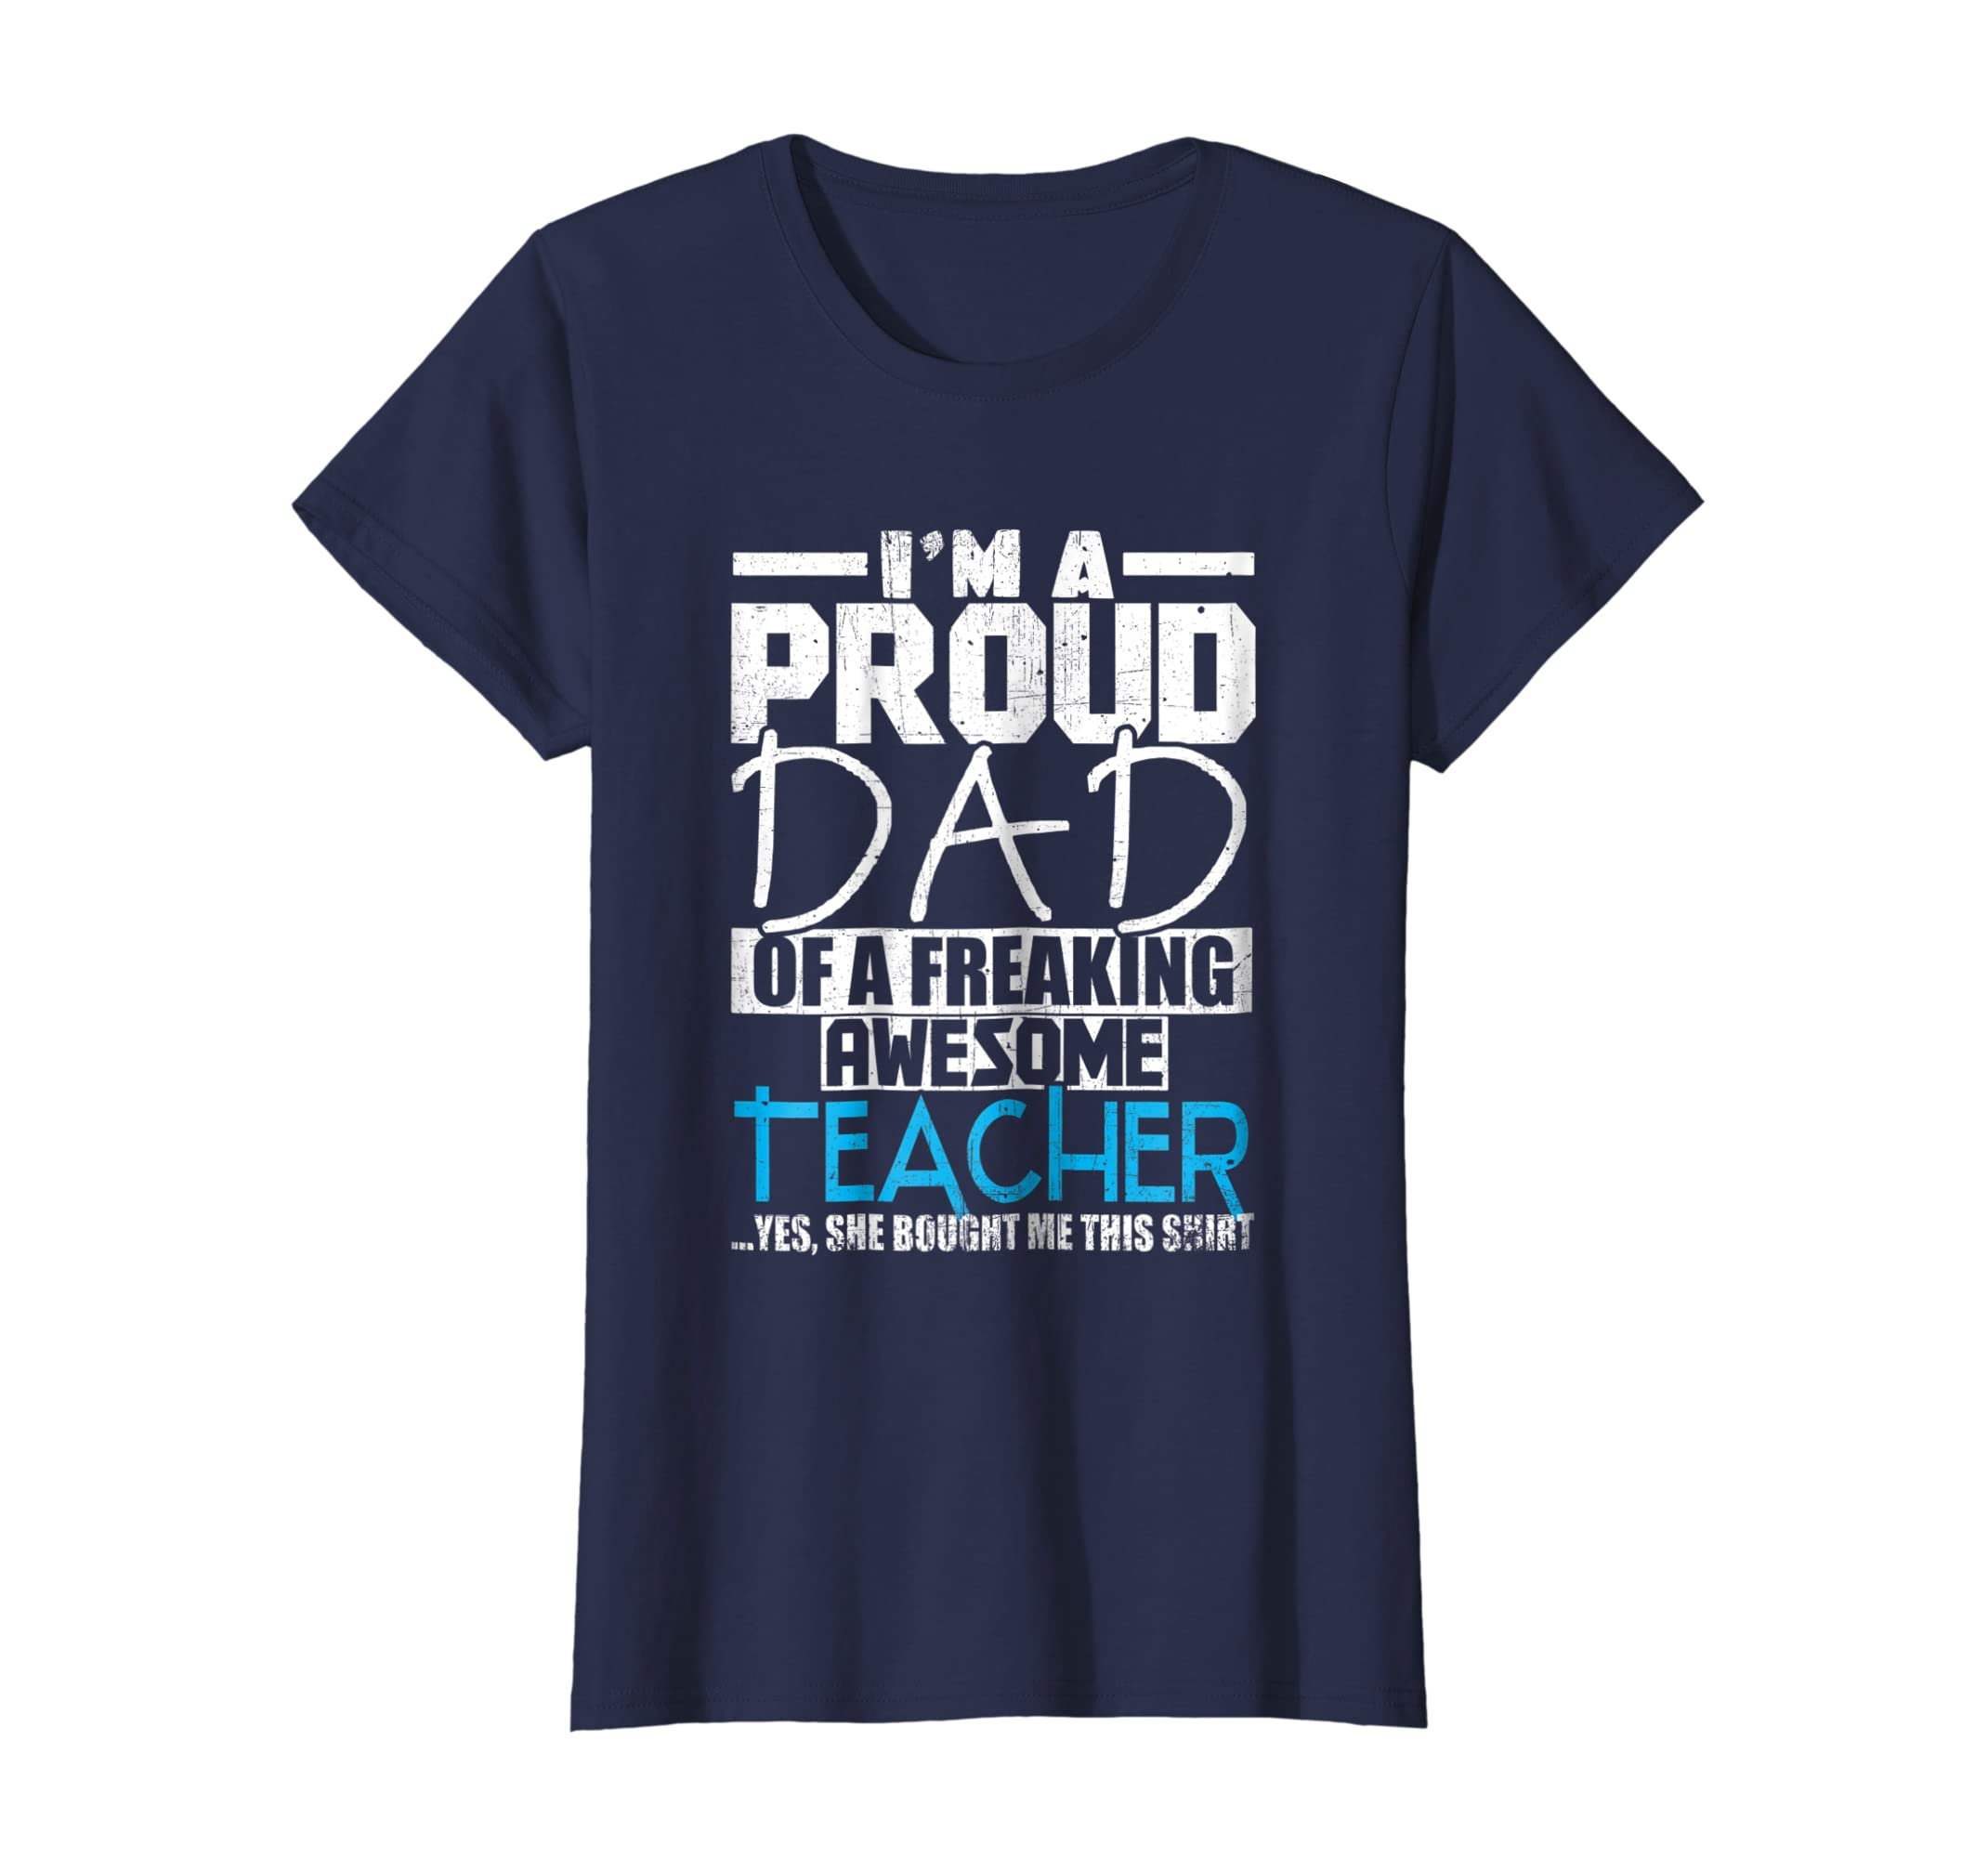 8d58d294 Amazon.com: I'm A Proud Dad Of A Freaking Awesome Teacher T-Shirt: Clothing